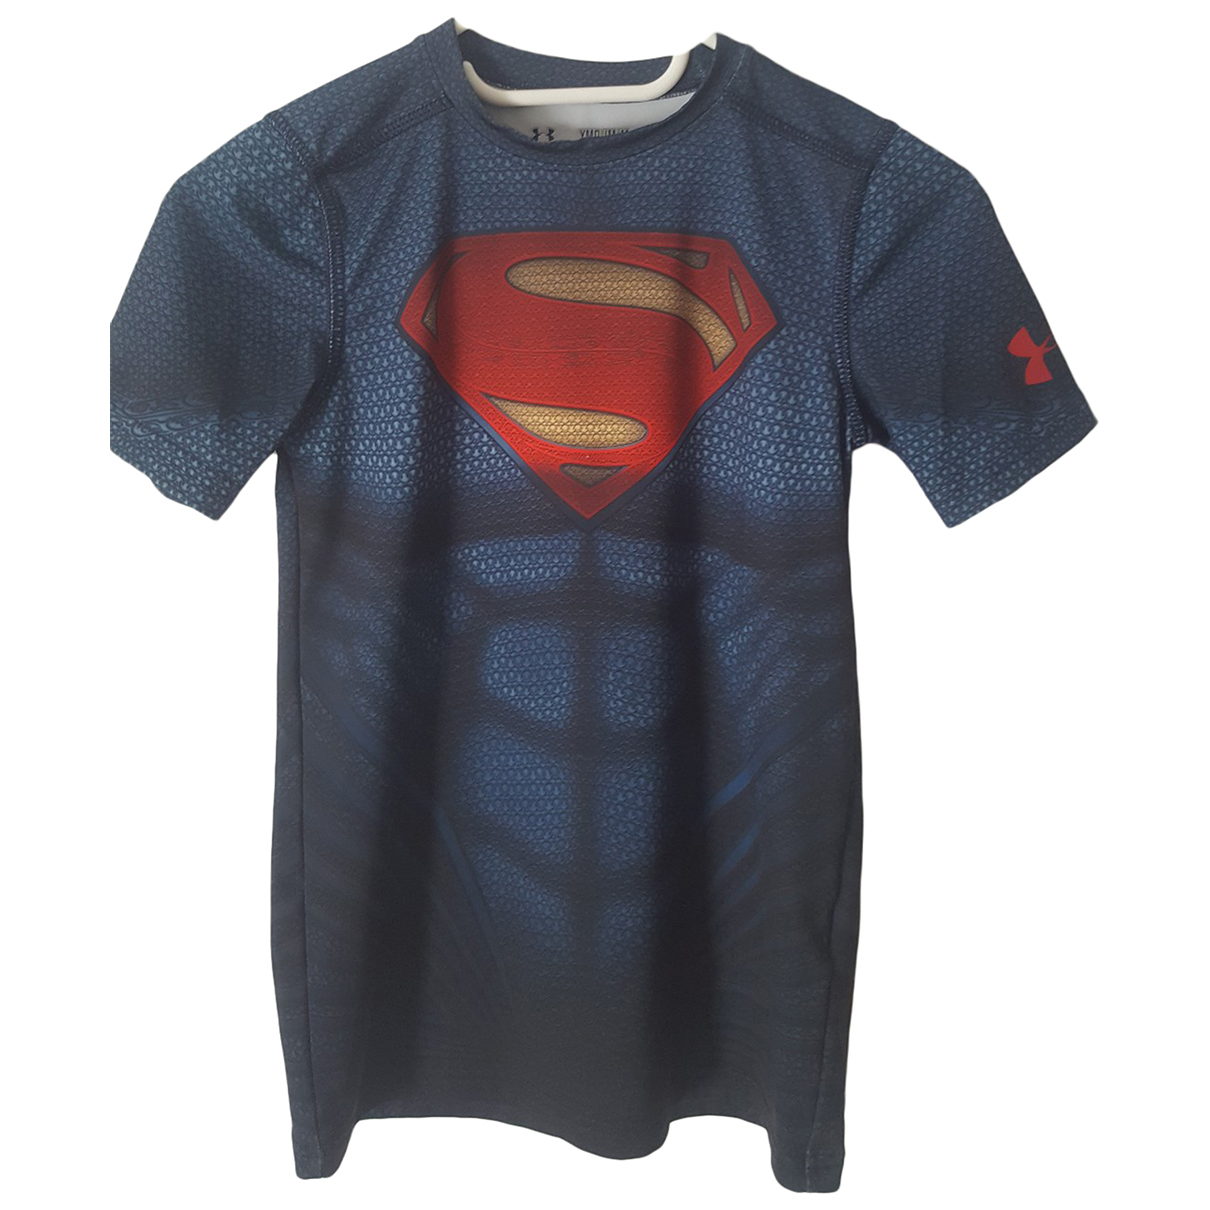 Under Armour \N Blue  top for Kids 10 years - up to 142cm FR